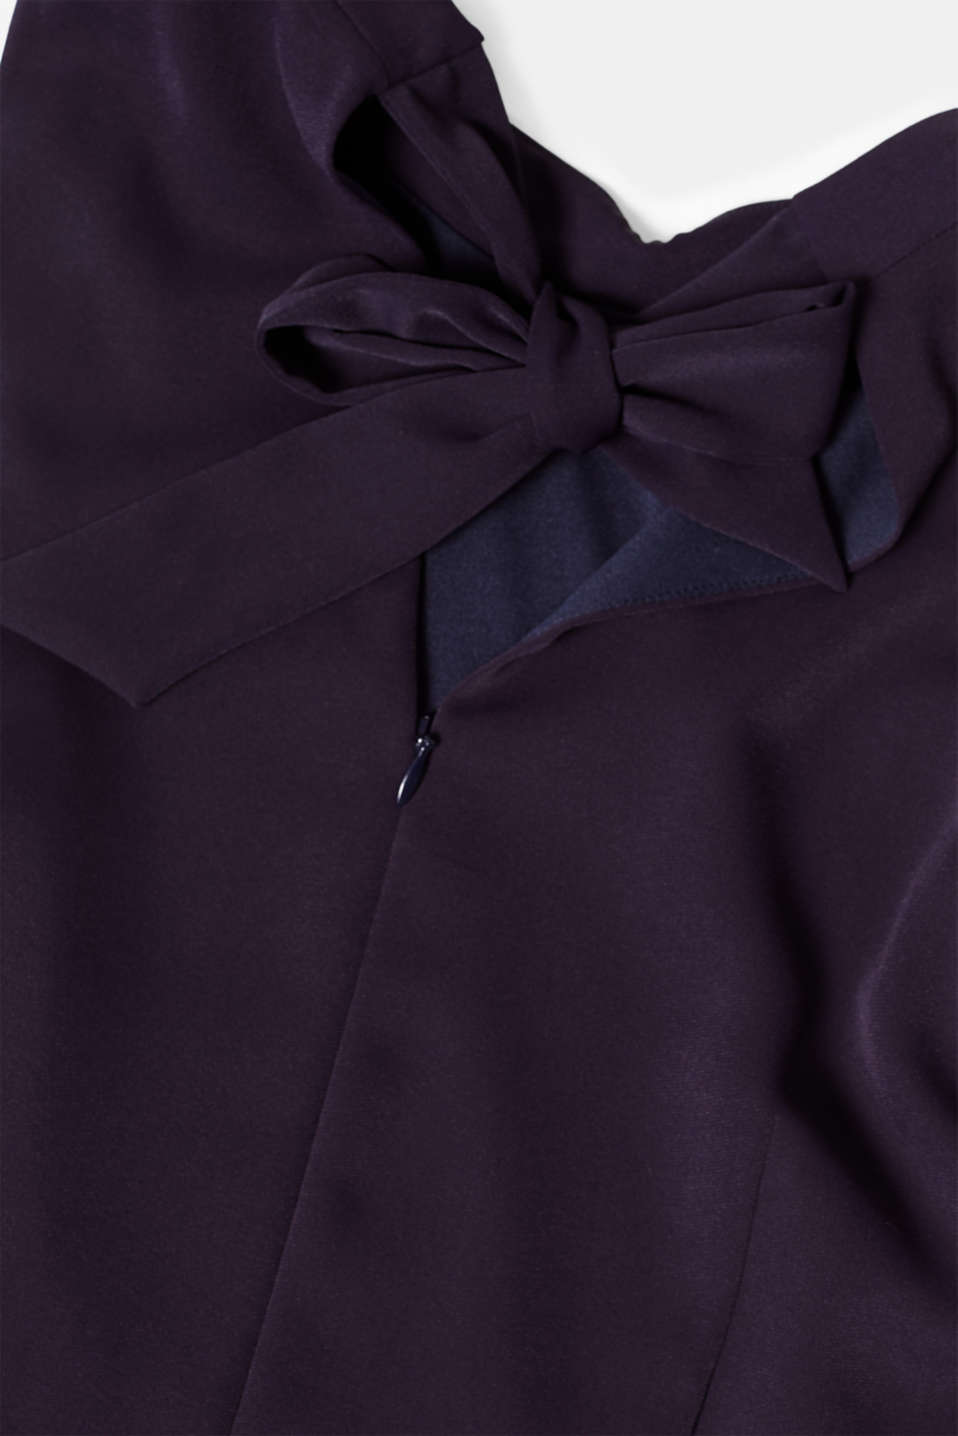 Jumpsuit with a band collar and bow, NAVY, detail image number 5